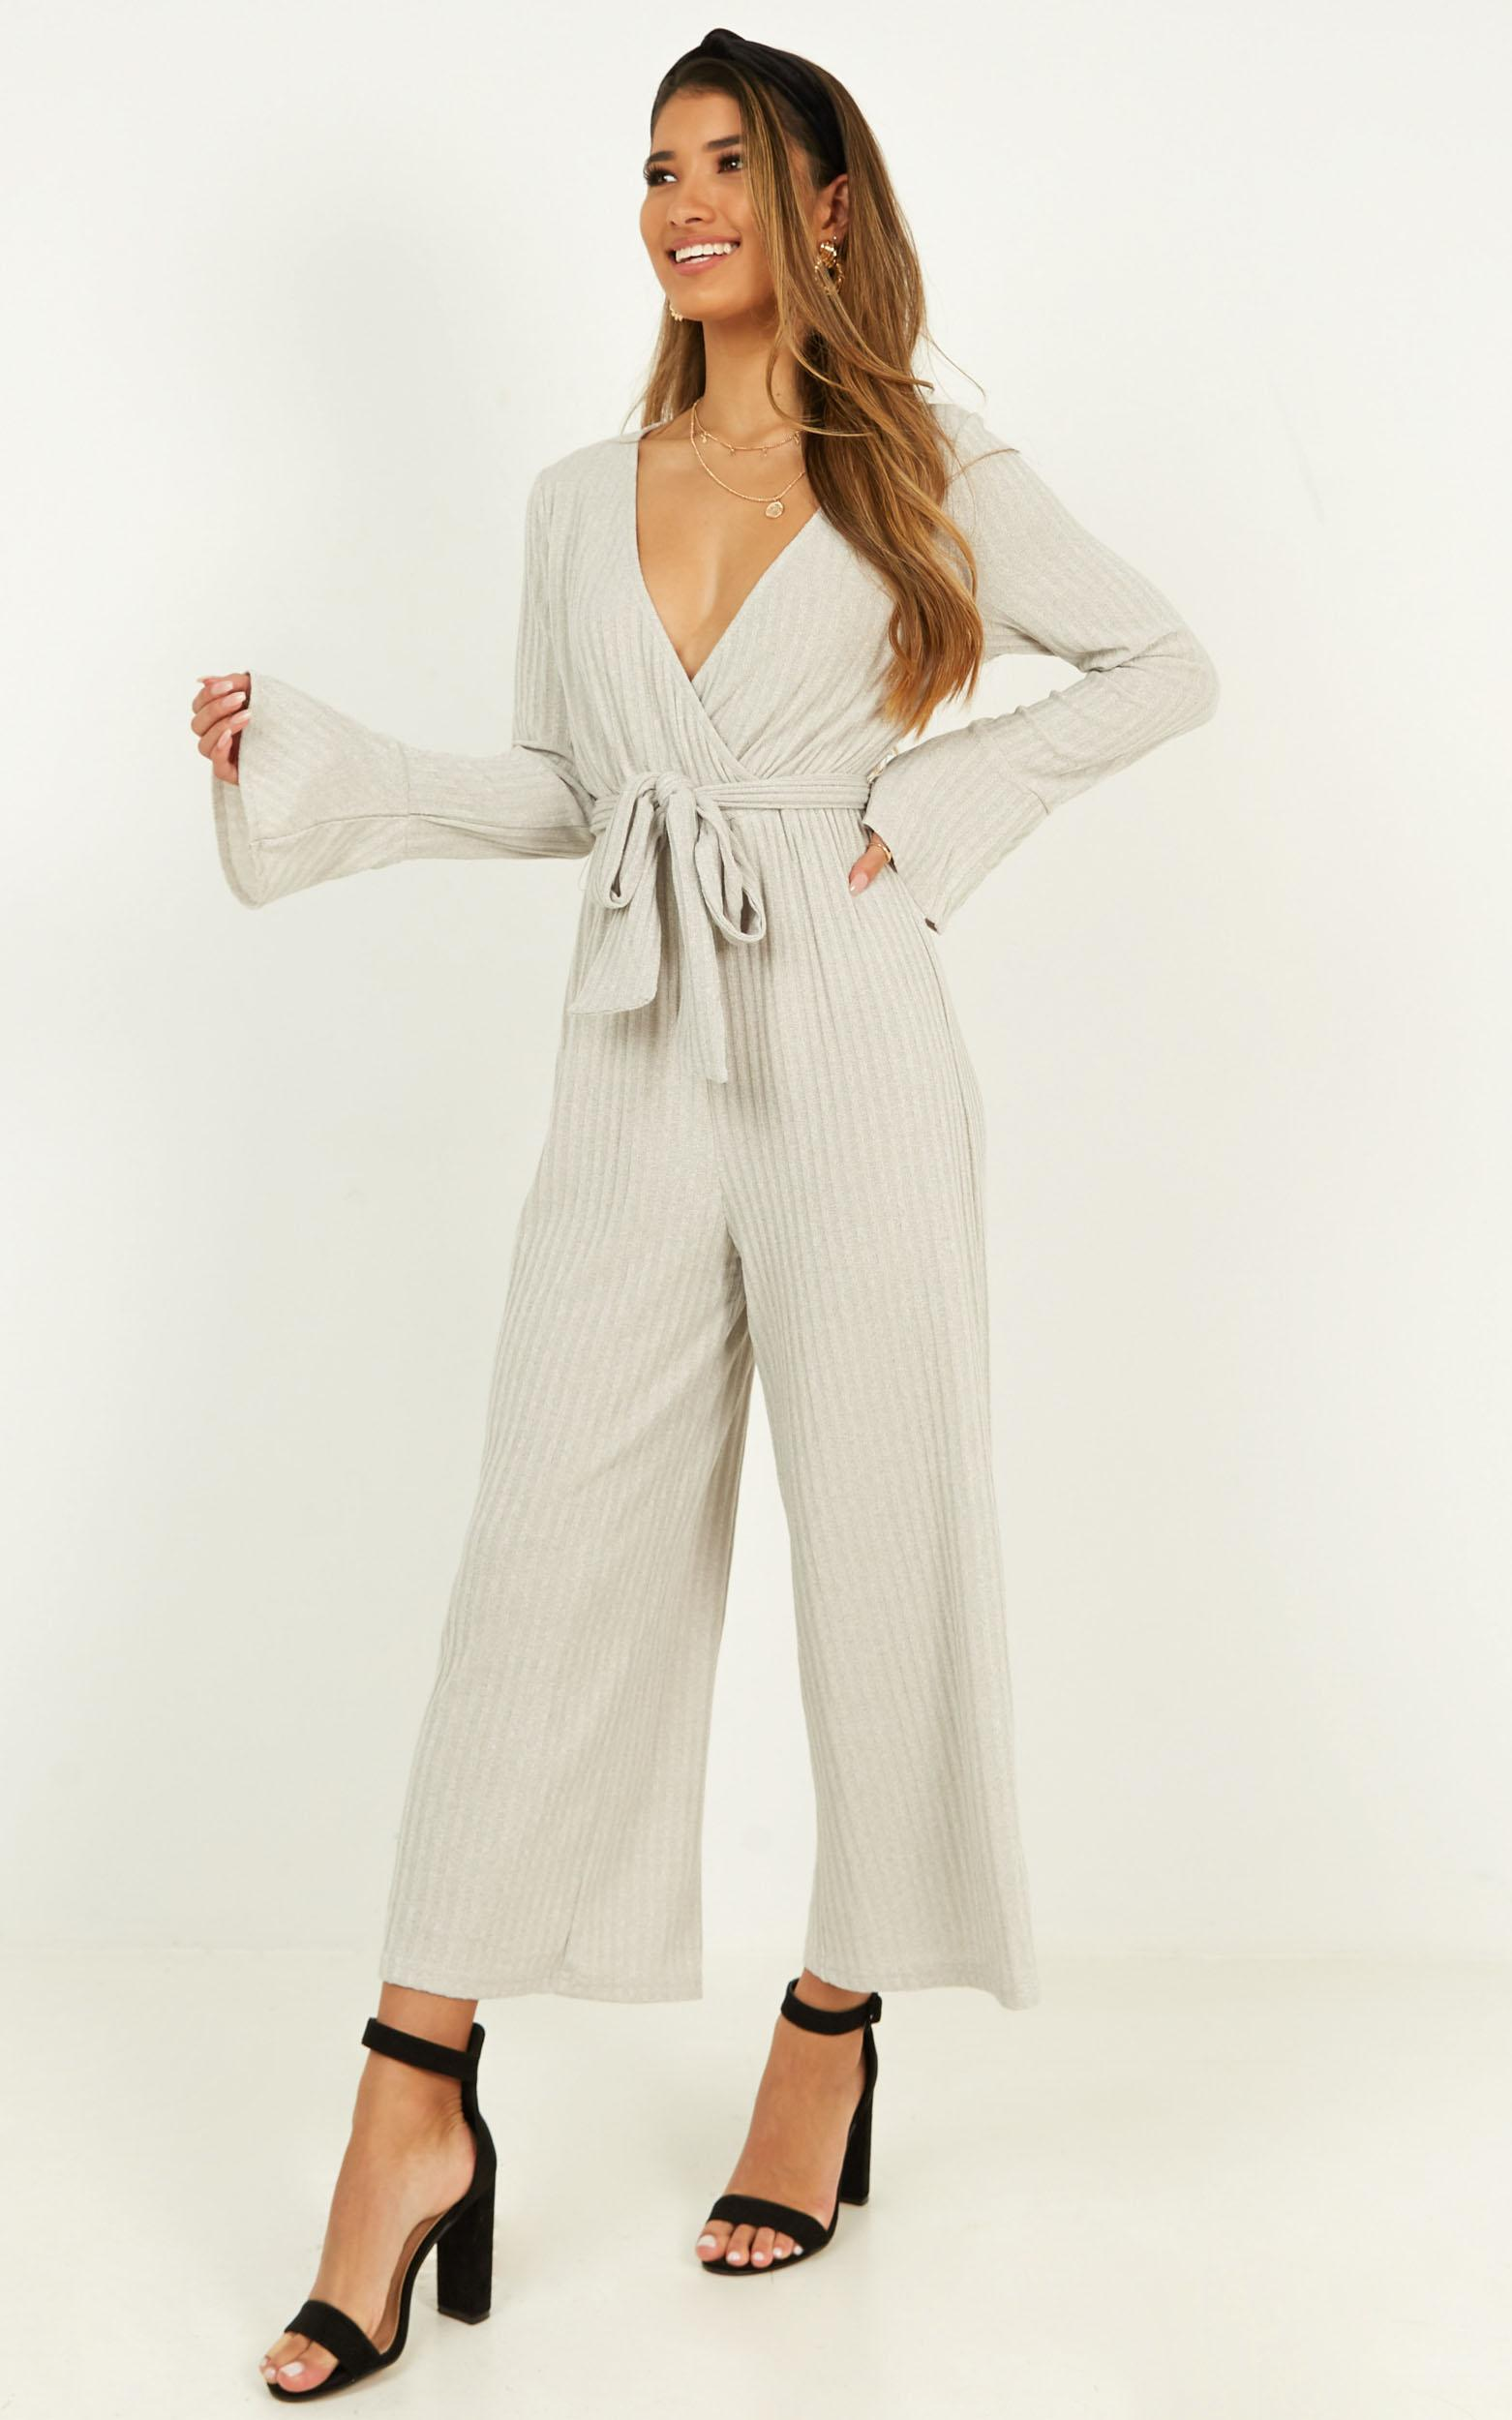 Feel Like Flying Jumpsuit in beige marle - 20 (XXXXL), Beige, hi-res image number null